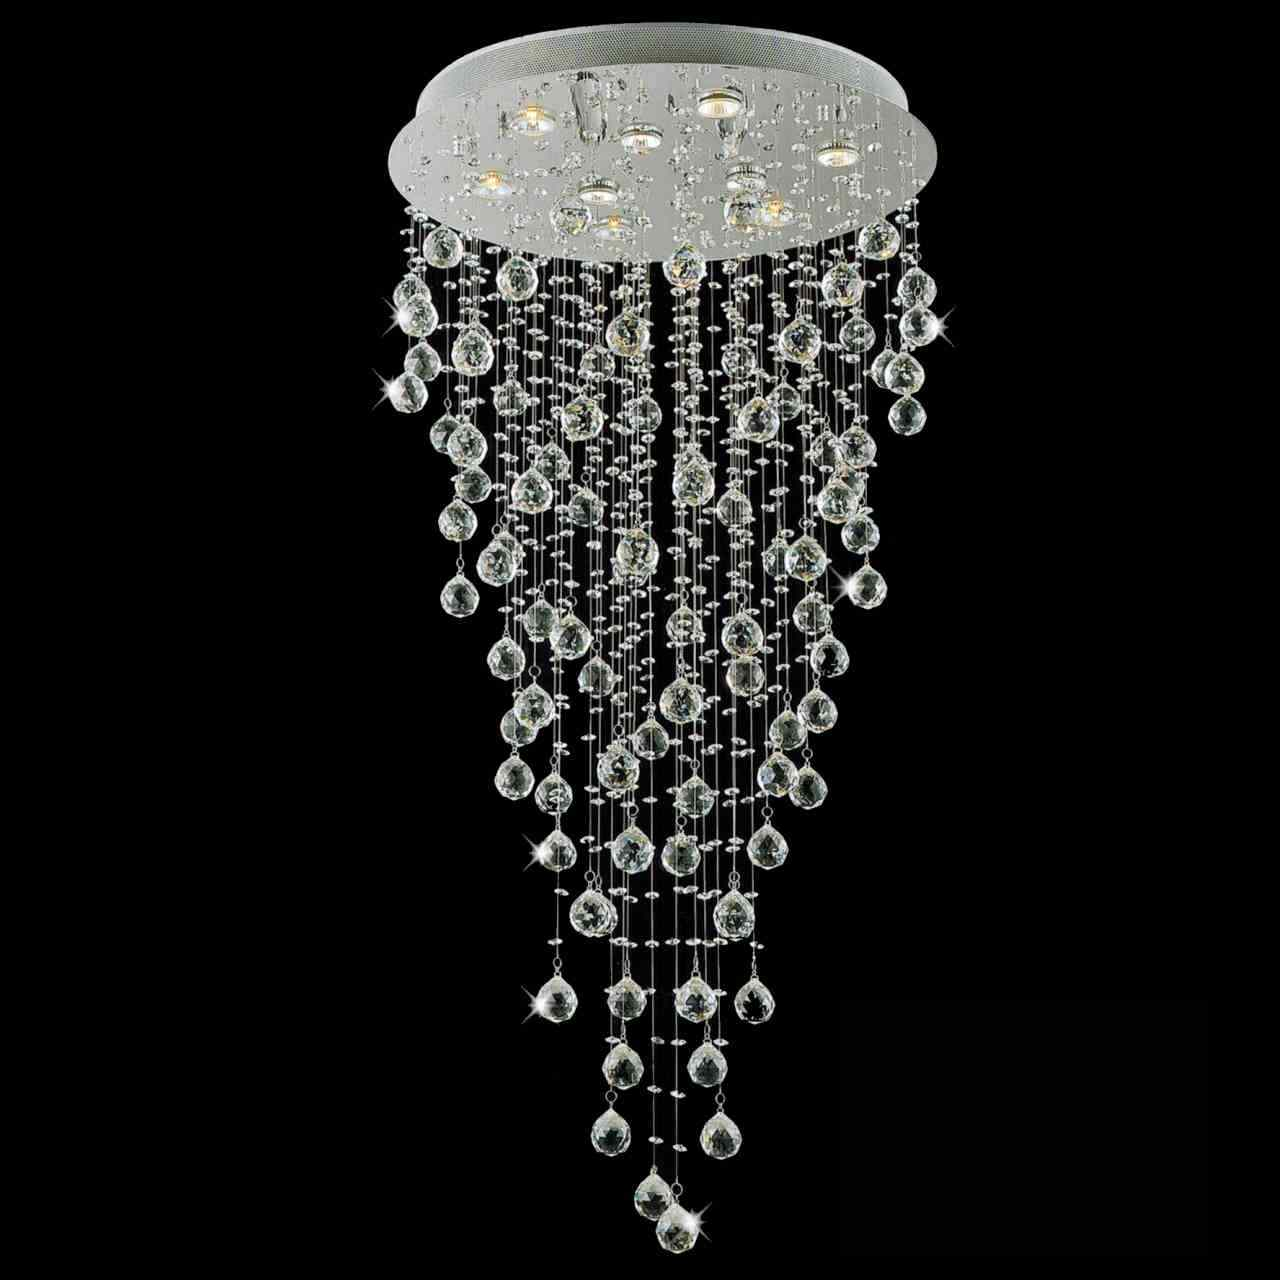 Brizzo lighting stores 47 raindrops modern foyer crystal round picture of 47 raindrops modern foyer crystal round chandelier mirror stainless steel base 9 lights aloadofball Gallery